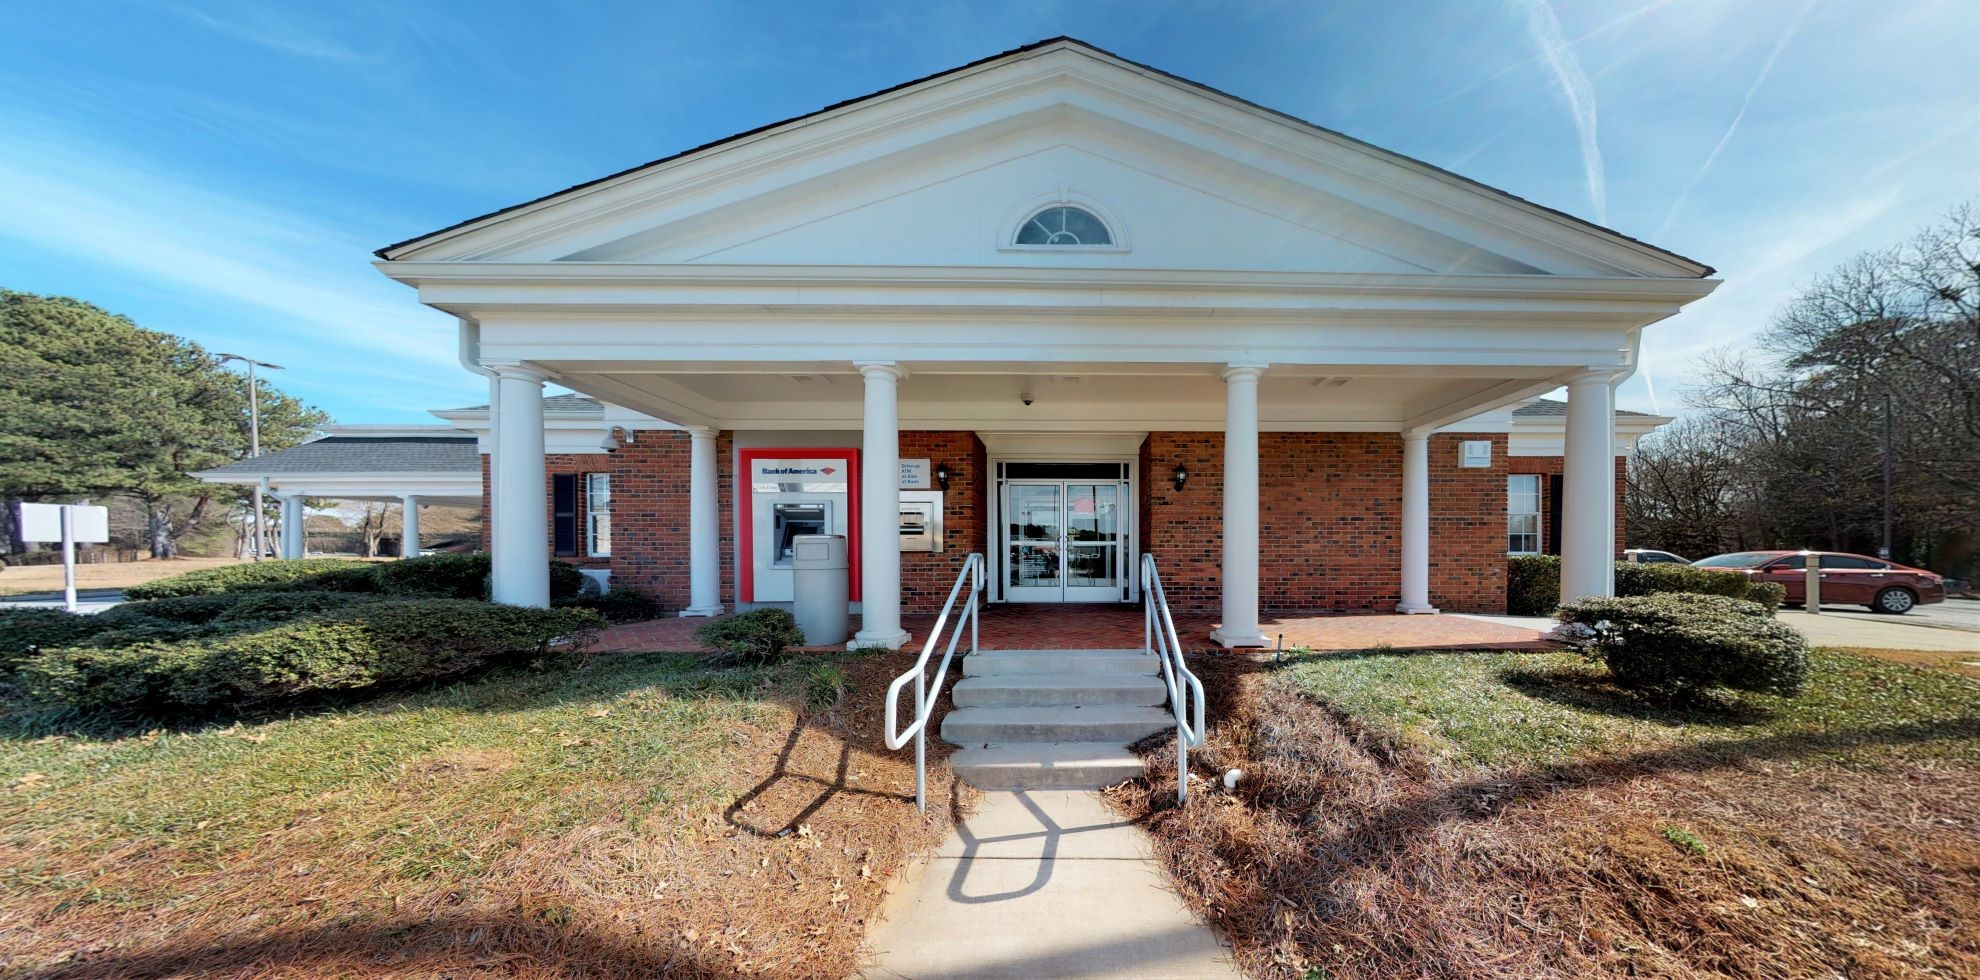 Bank of America financial center with drive-thru ATM | 2052 Lawrenceville Hwy, Decatur, GA 30033